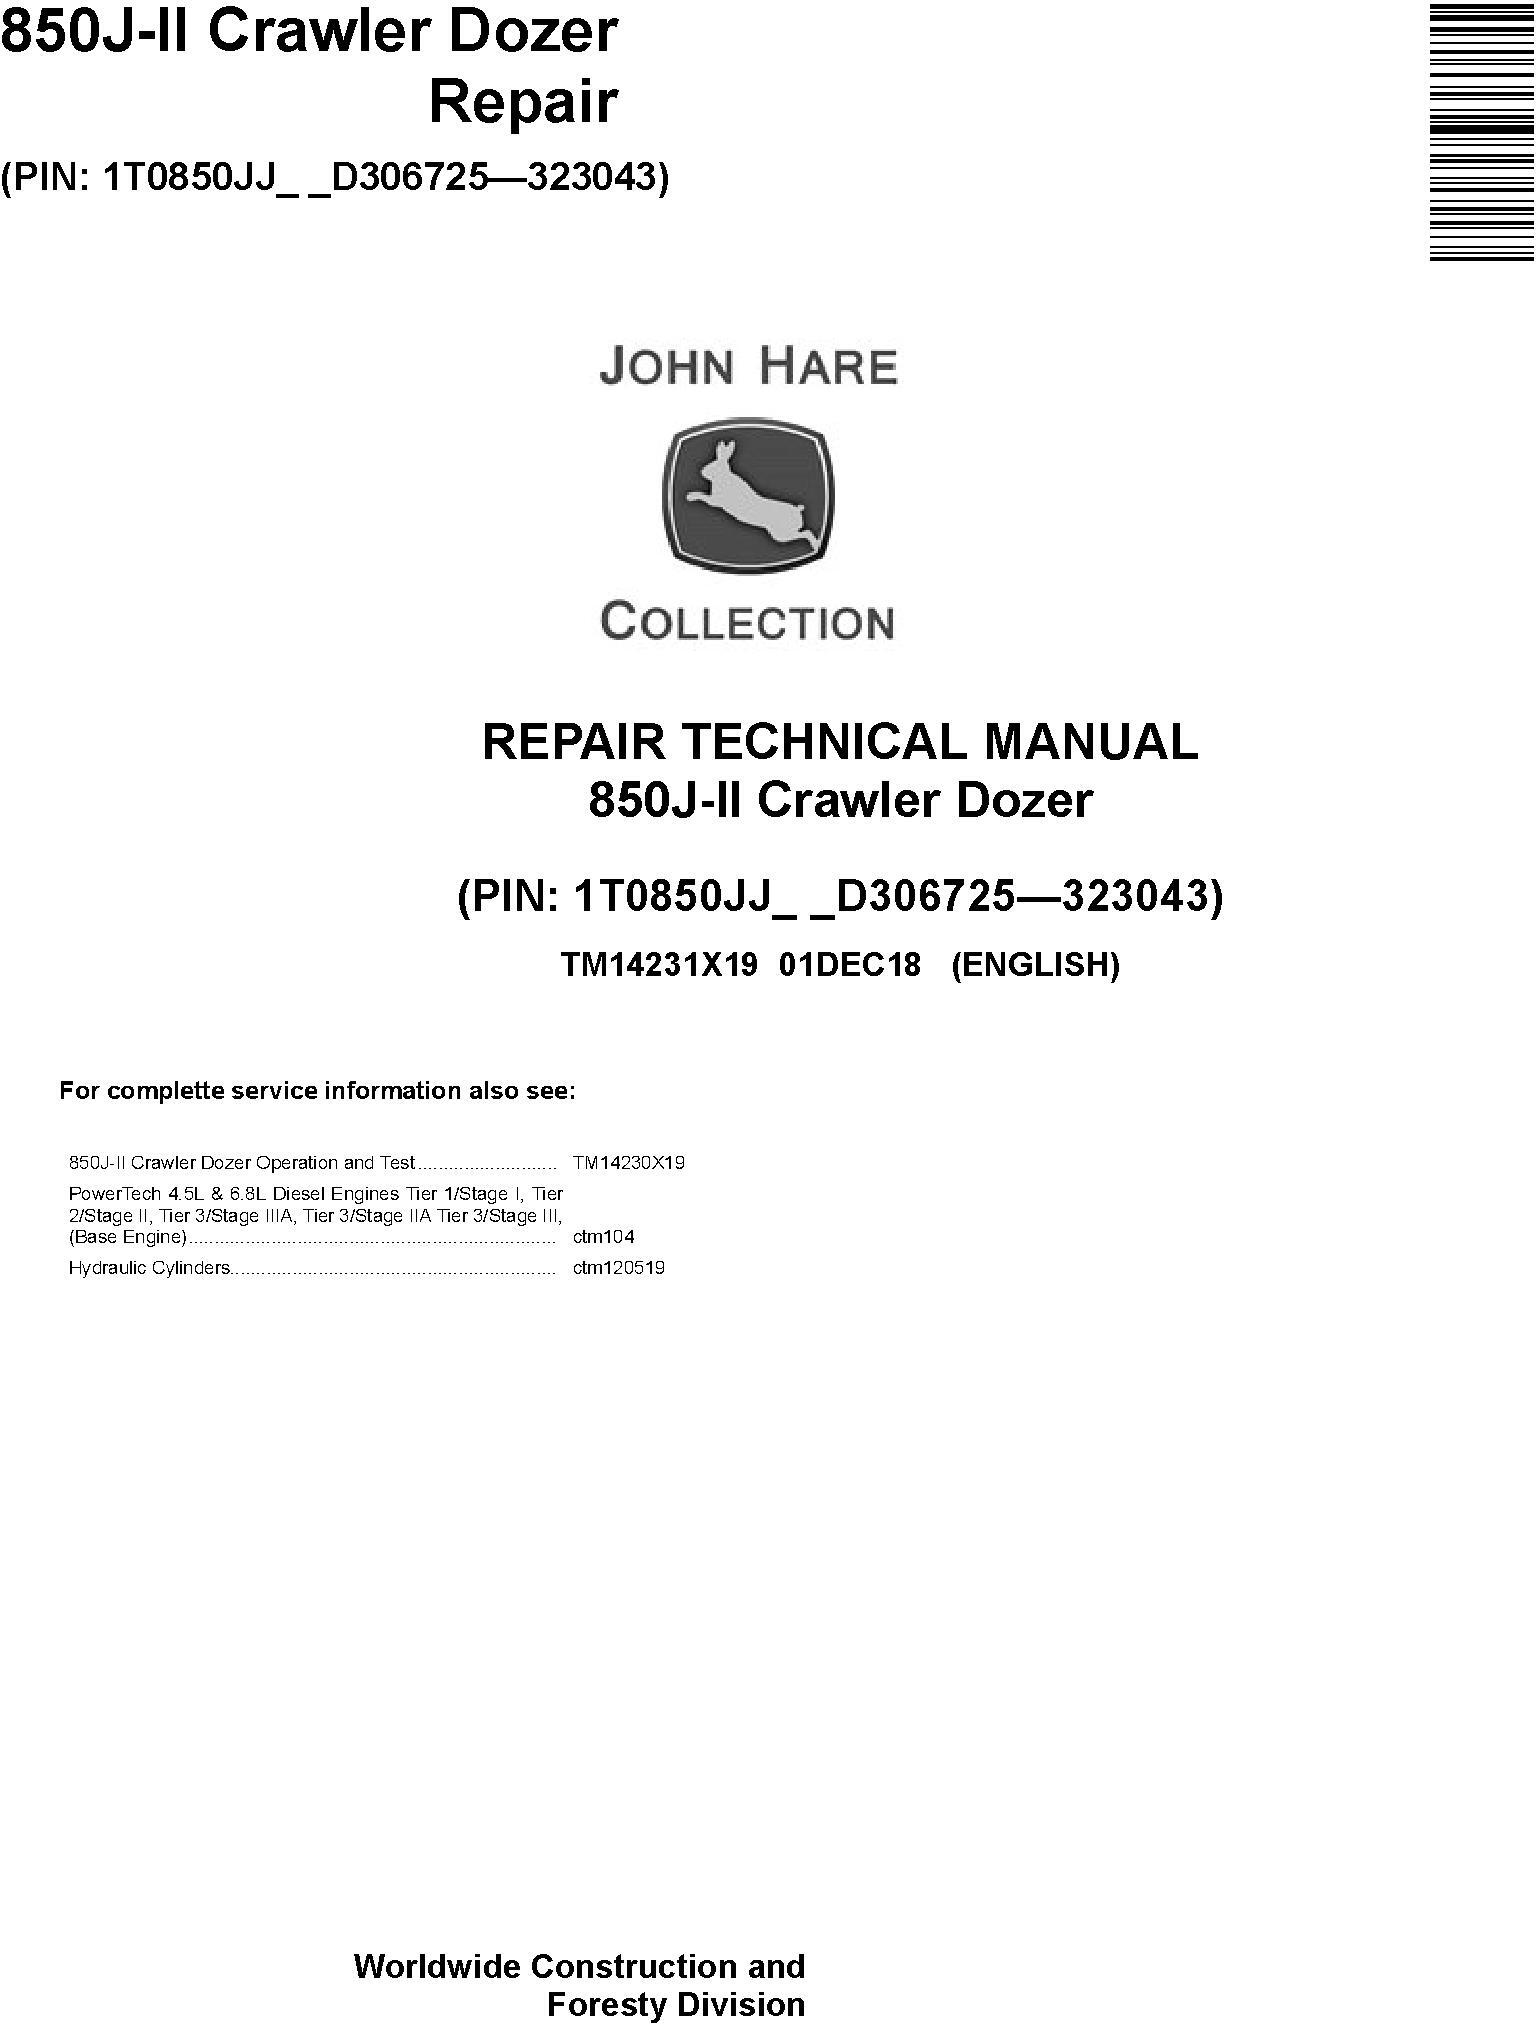 John Deere 850J-II (SN. D306725-323043) Crawler Dozer Service Repair Technical Manual (TM14231X19) - 19023